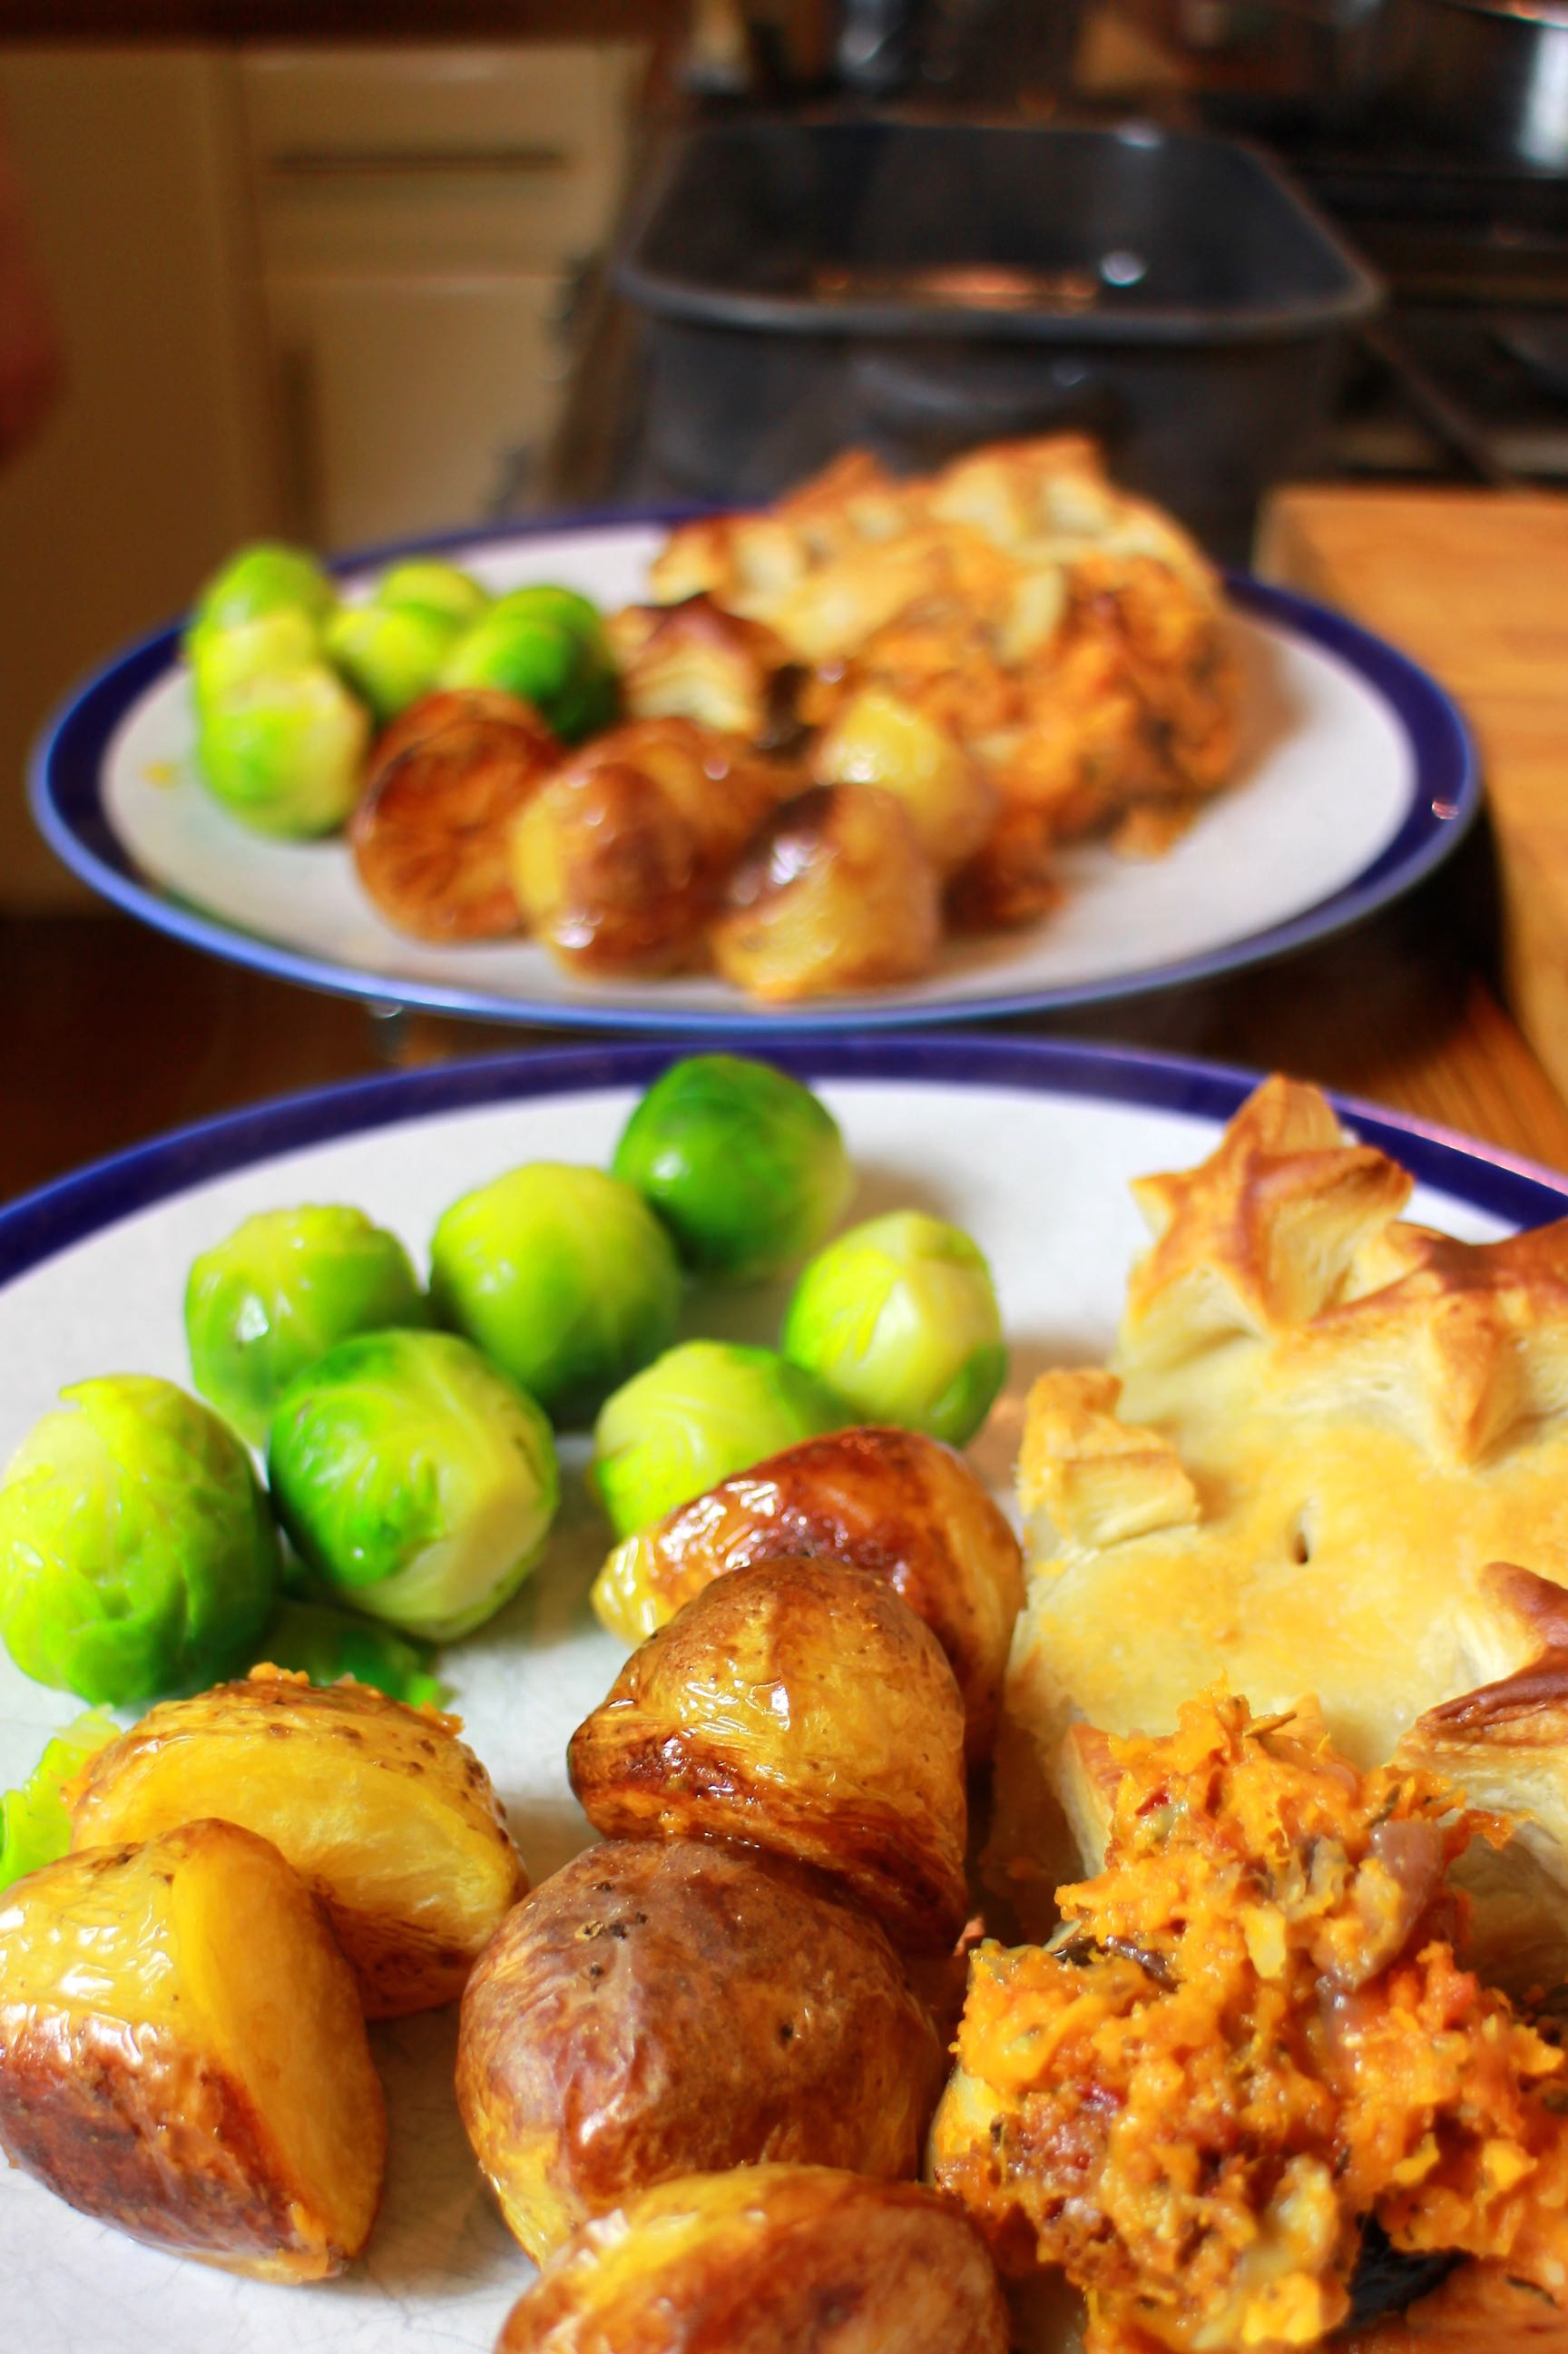 Vegetarian christmas dinner with pie, roast potatoes and boiled sprouts.